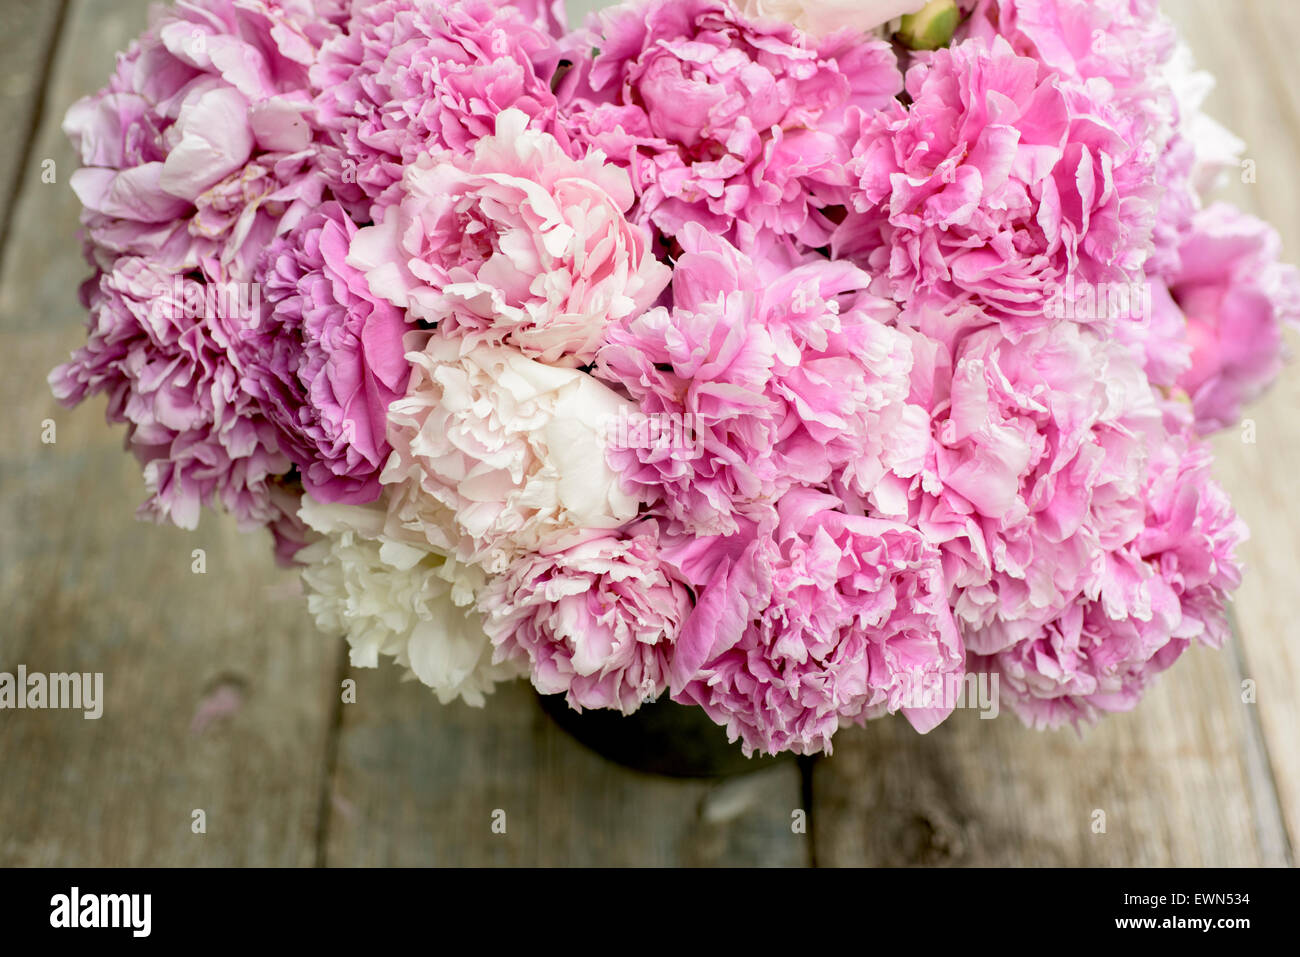 Bouquet of mixed pink and white peonies in container - Stock Image